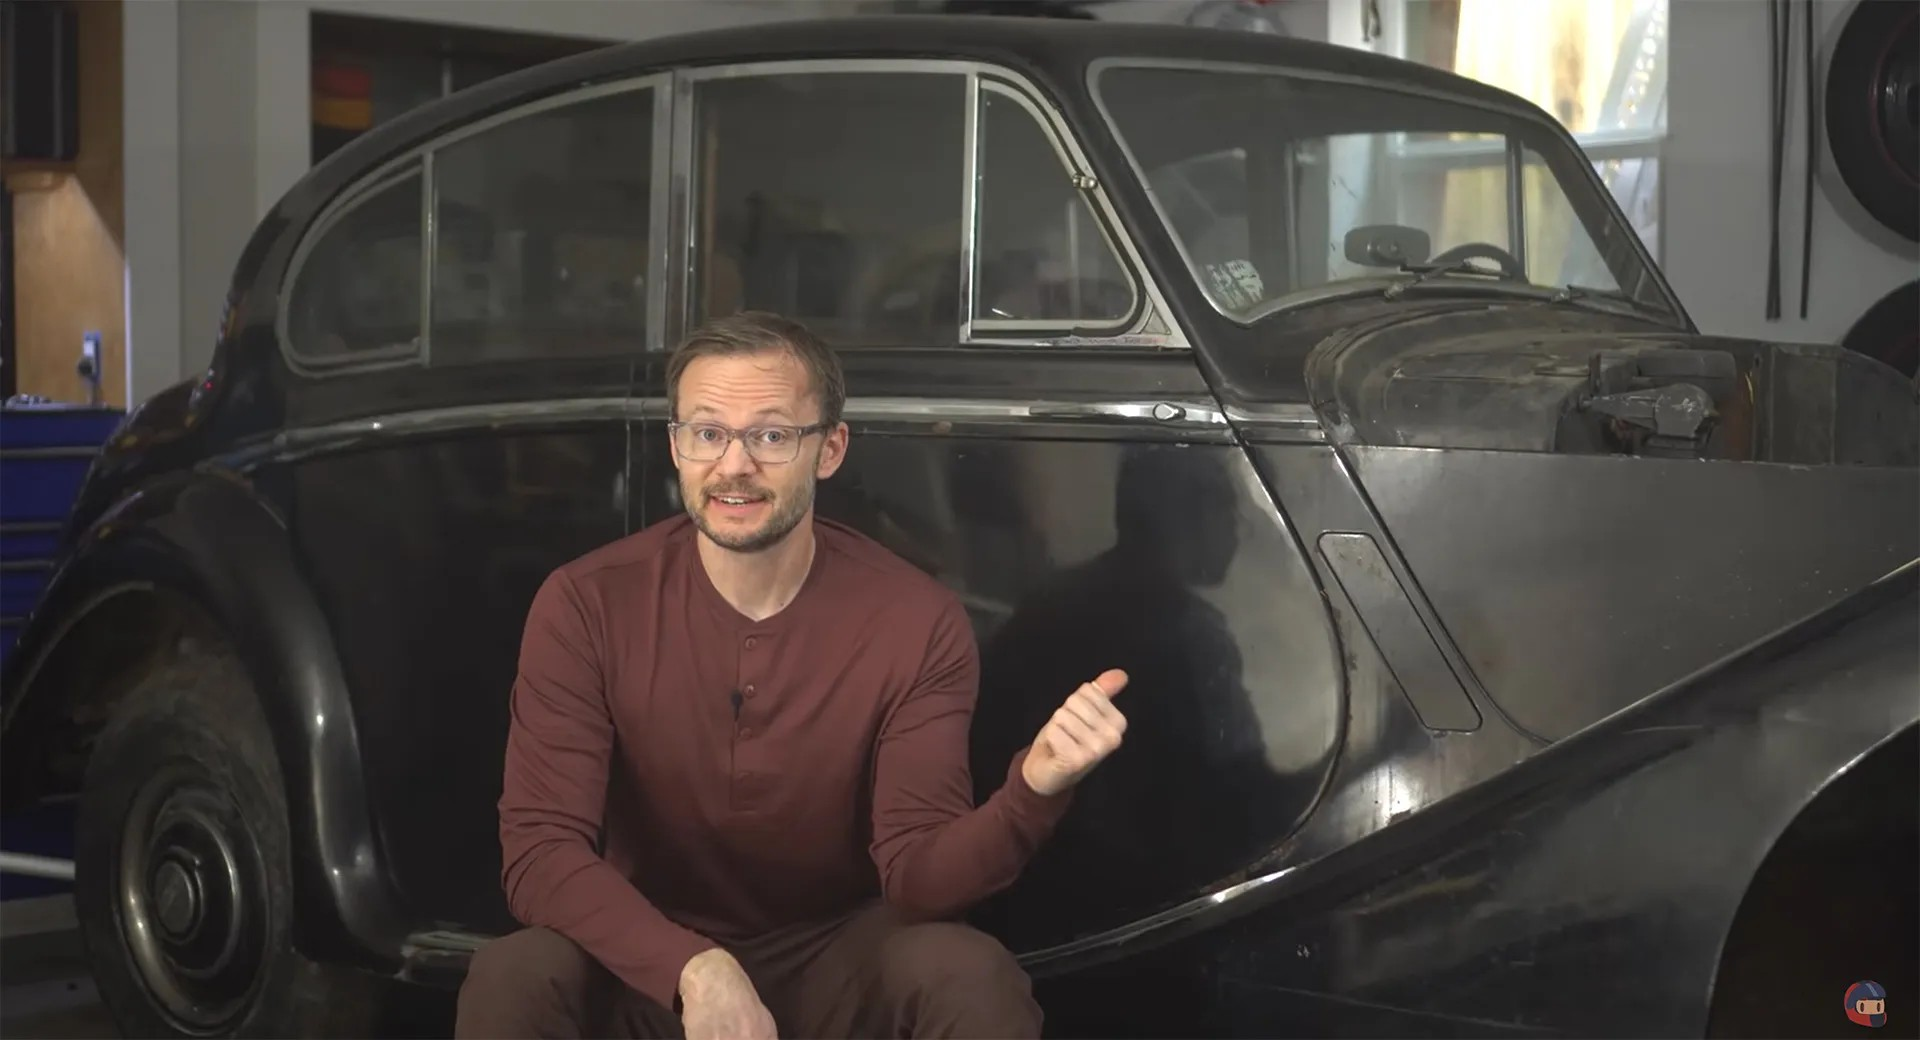 YouTuber SuperfastMatt actually intends to convert an ancient 1950 Jaguar Mark V into a battery vehicle using Tesla Model 3 parts. Here's his statement.